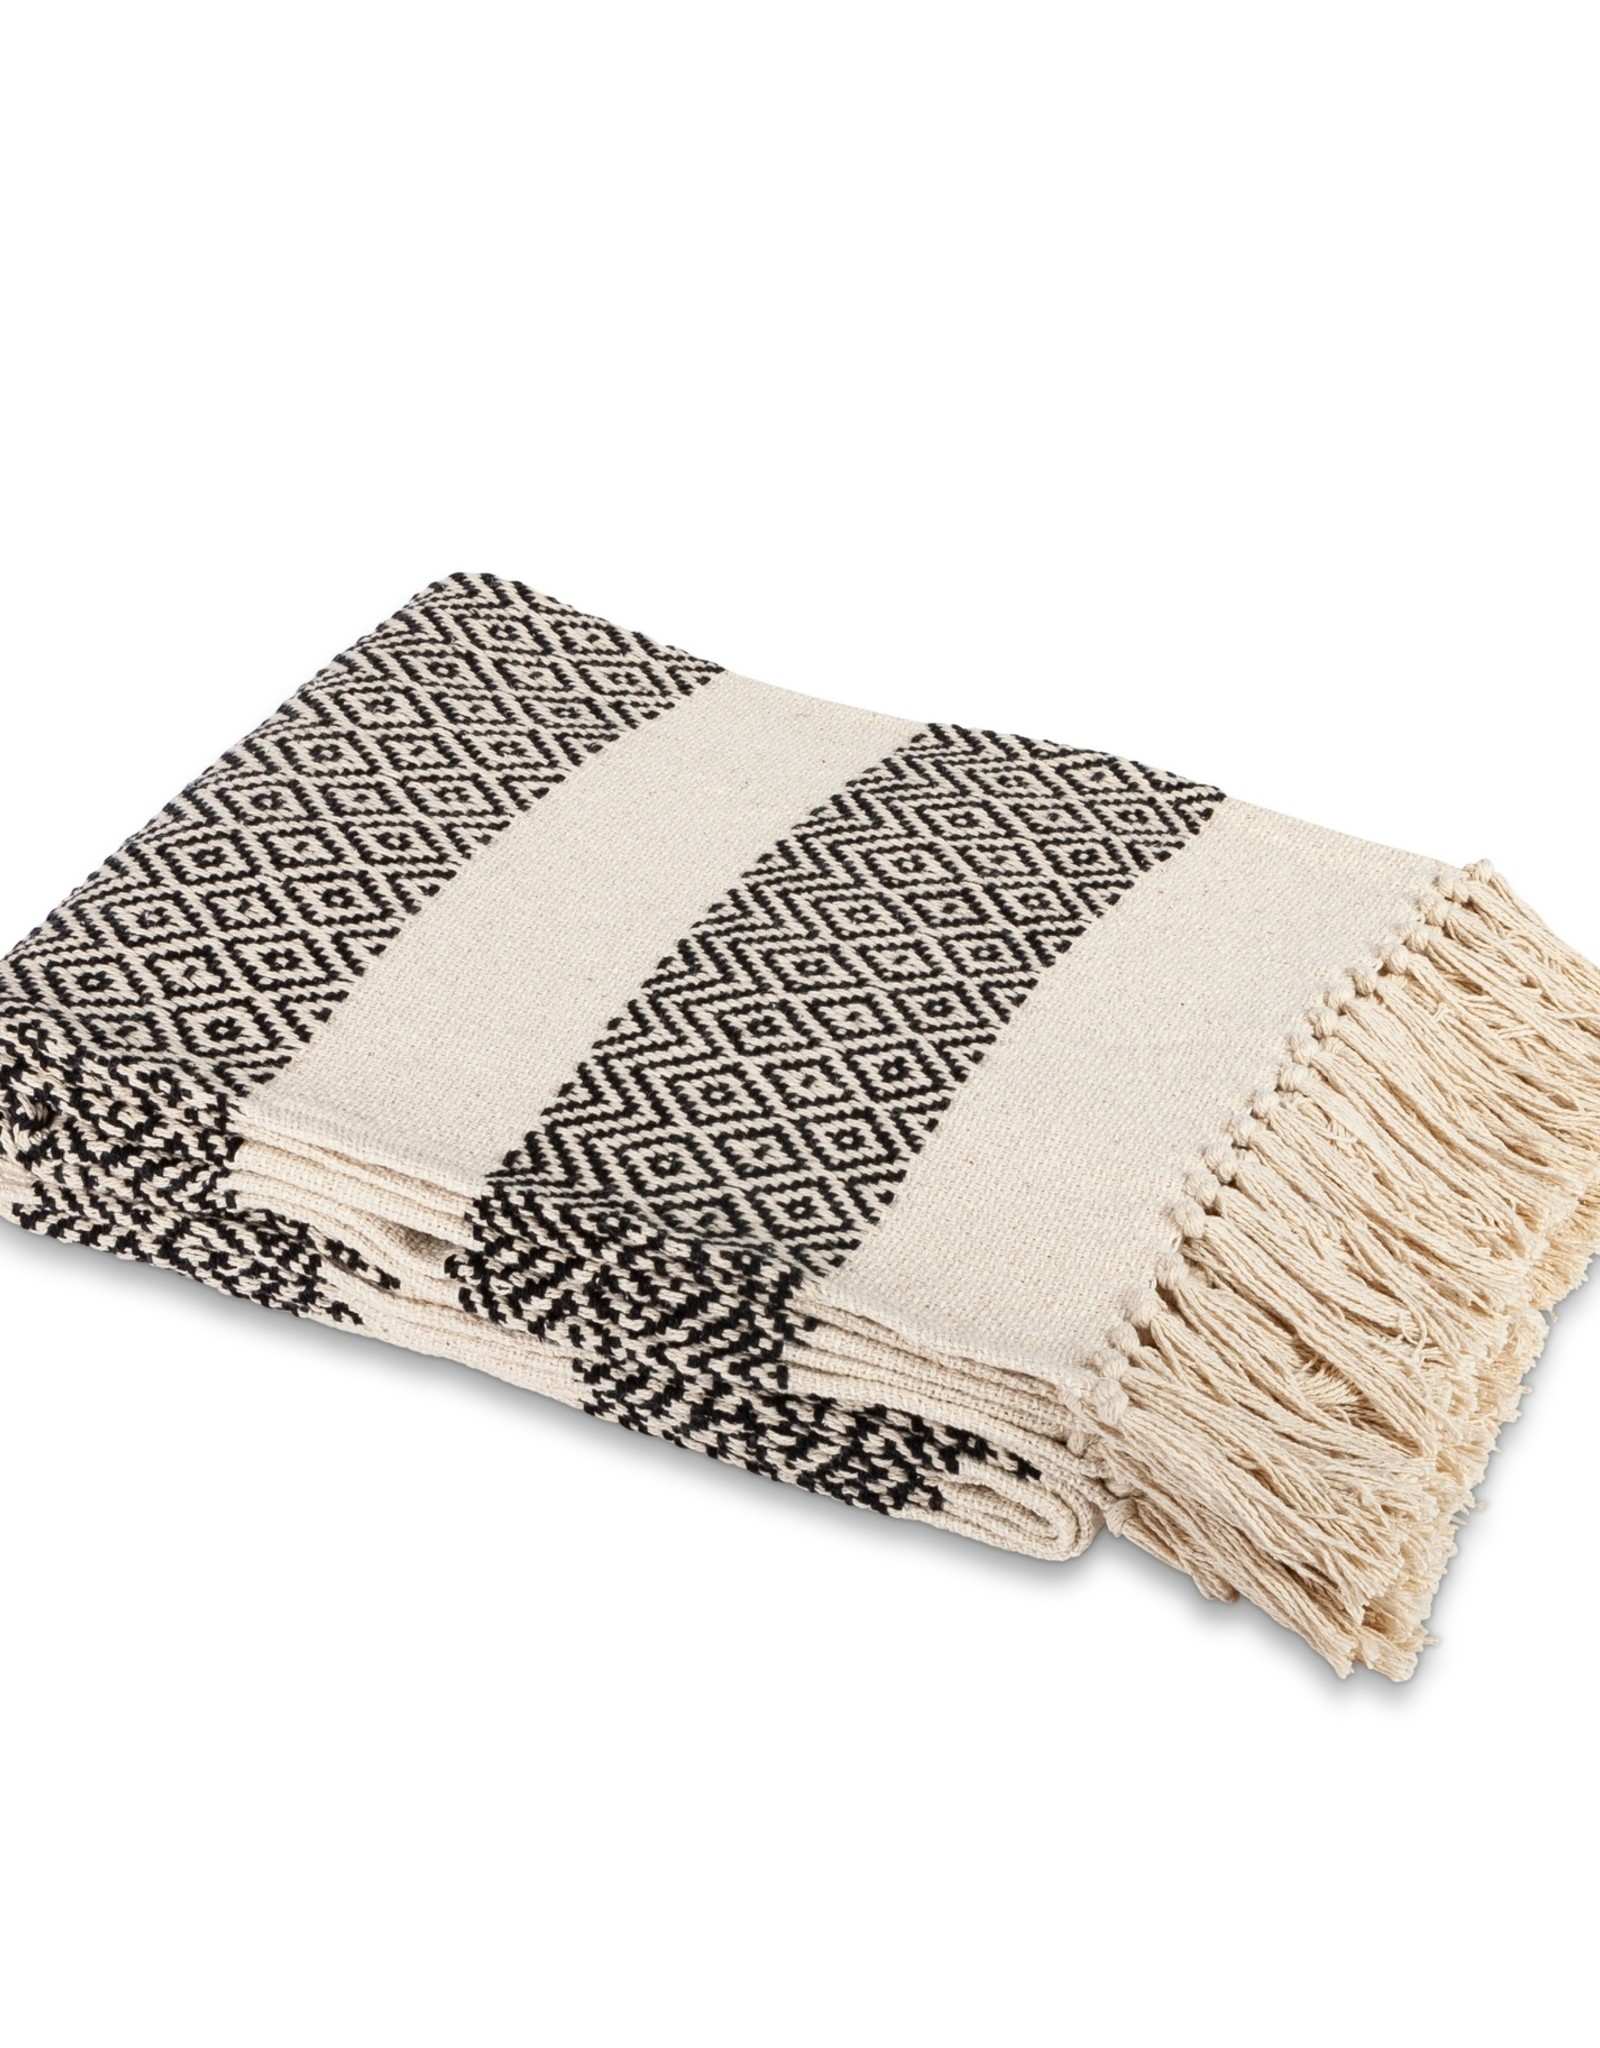 The Gerson Companies Cotton Handloom Woven Throw - black and white